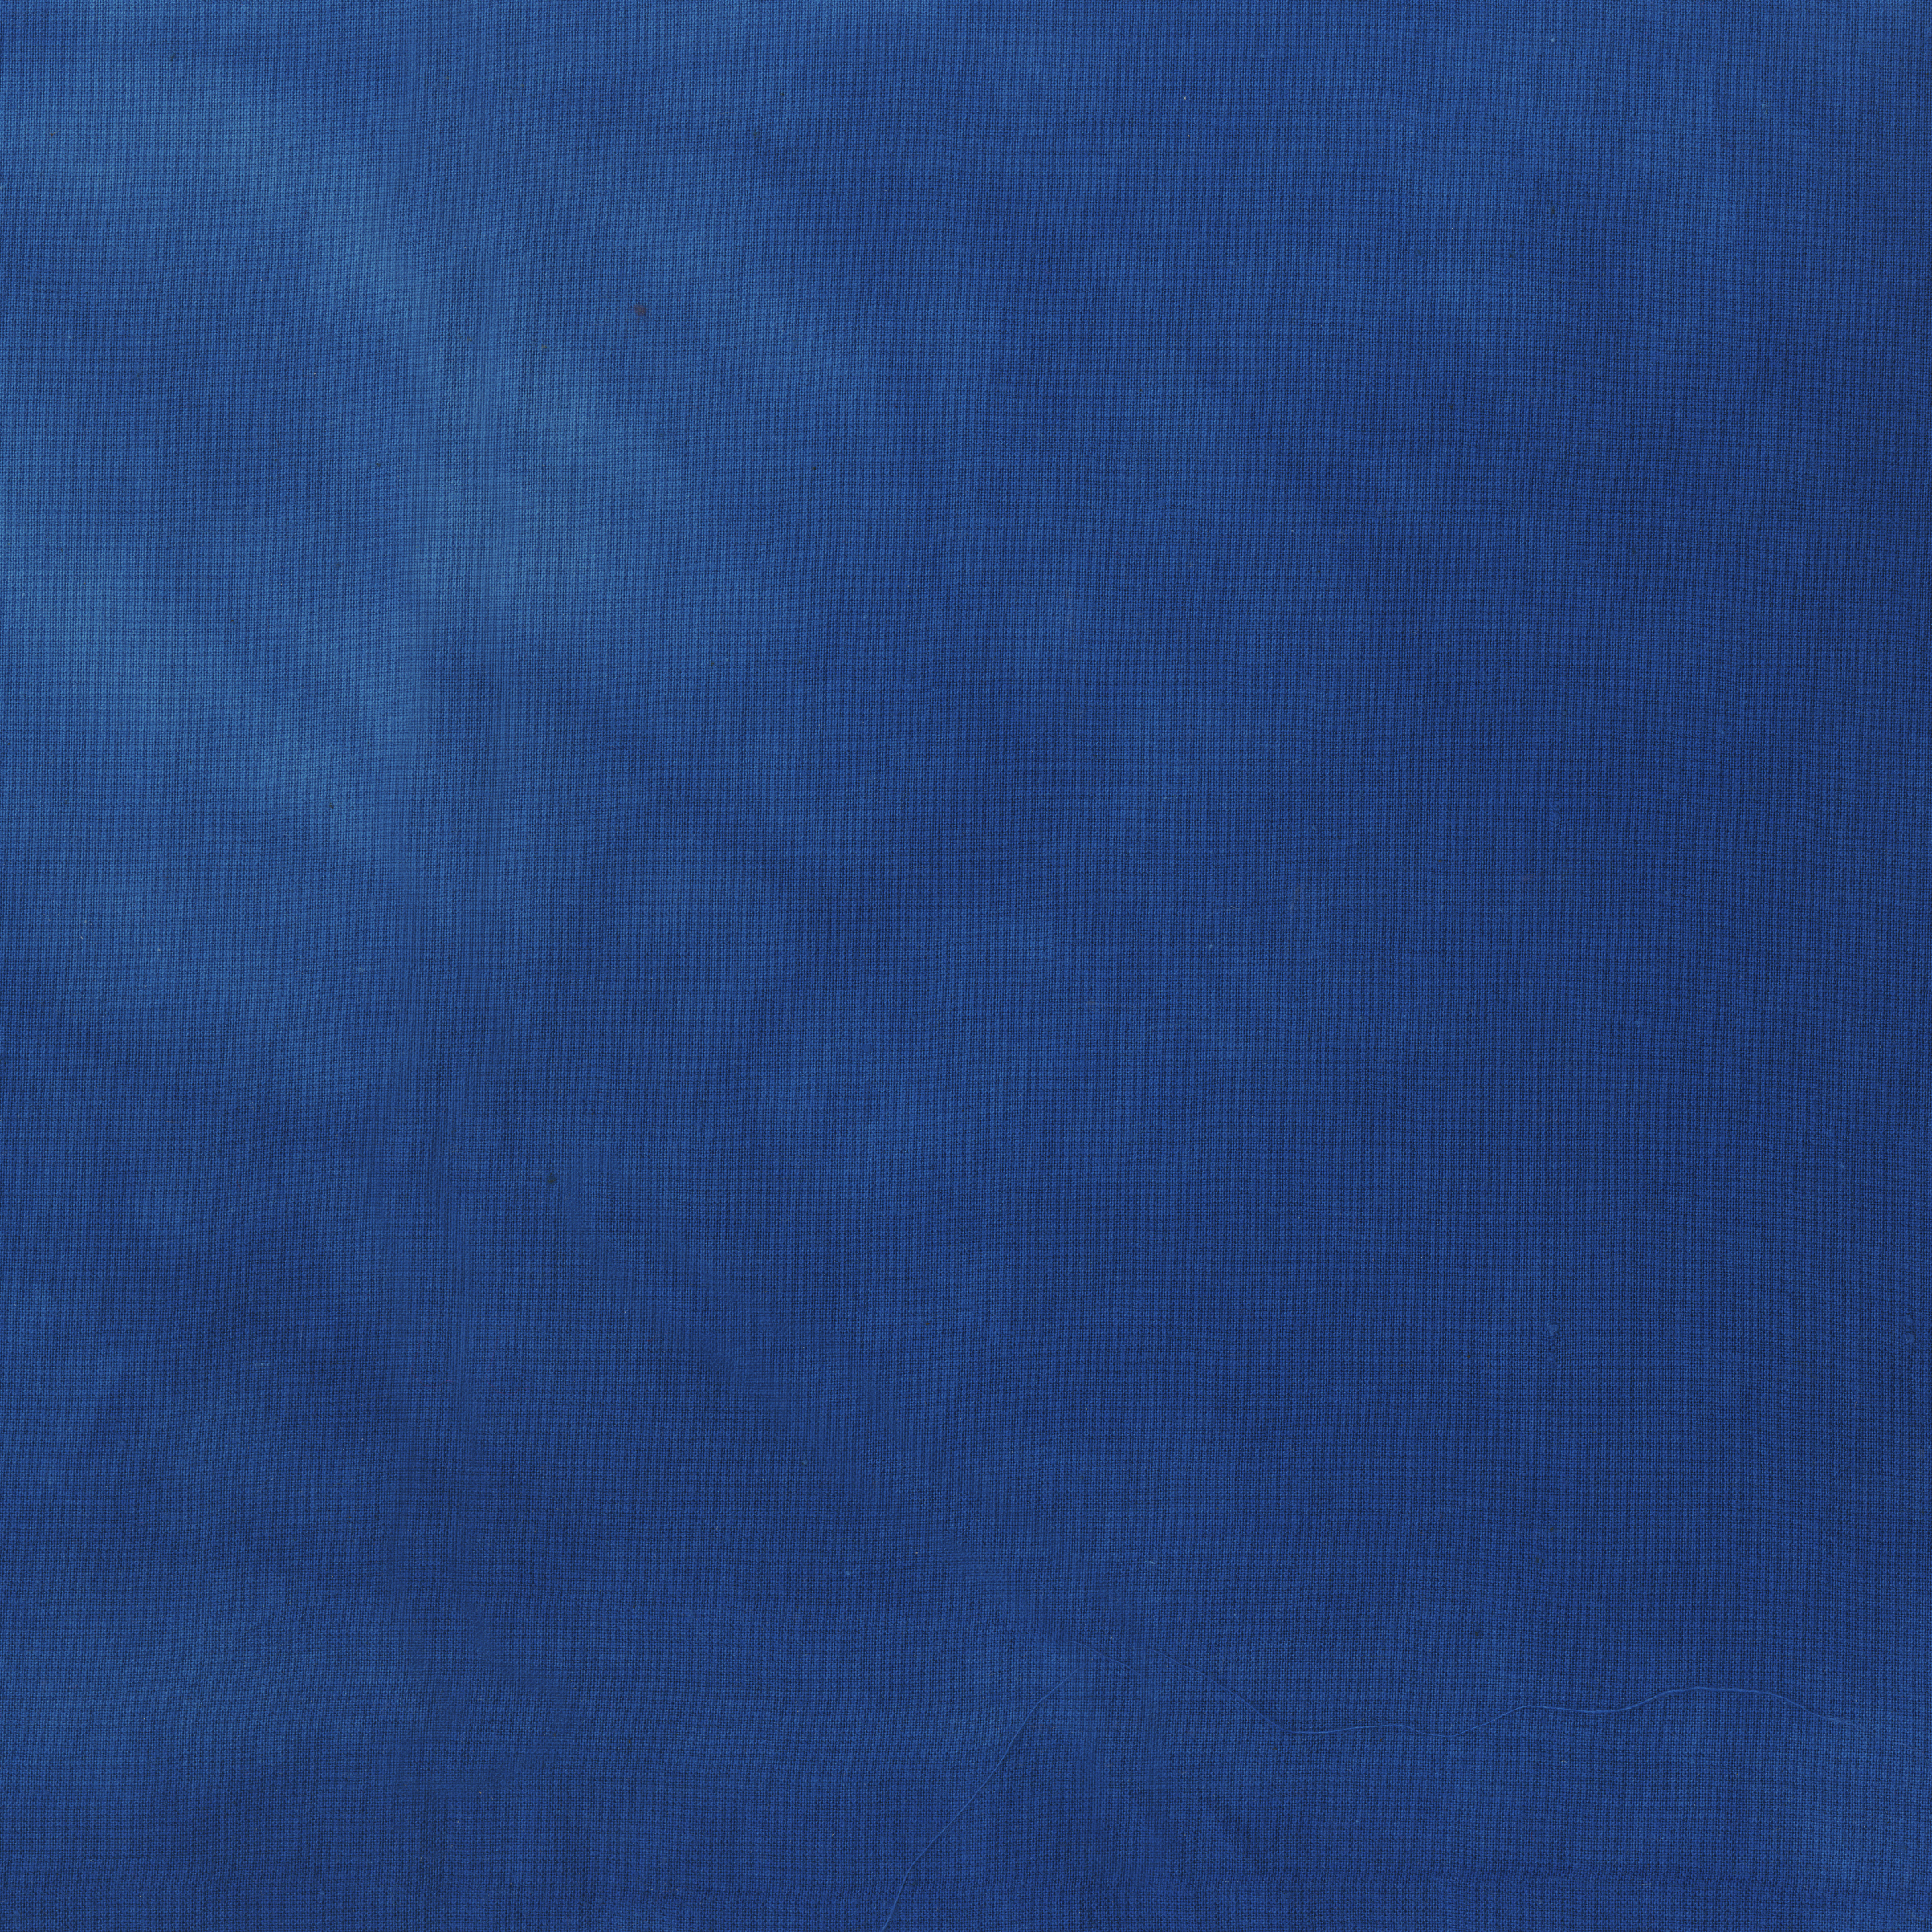 37098-79 Royal Blue.jpg